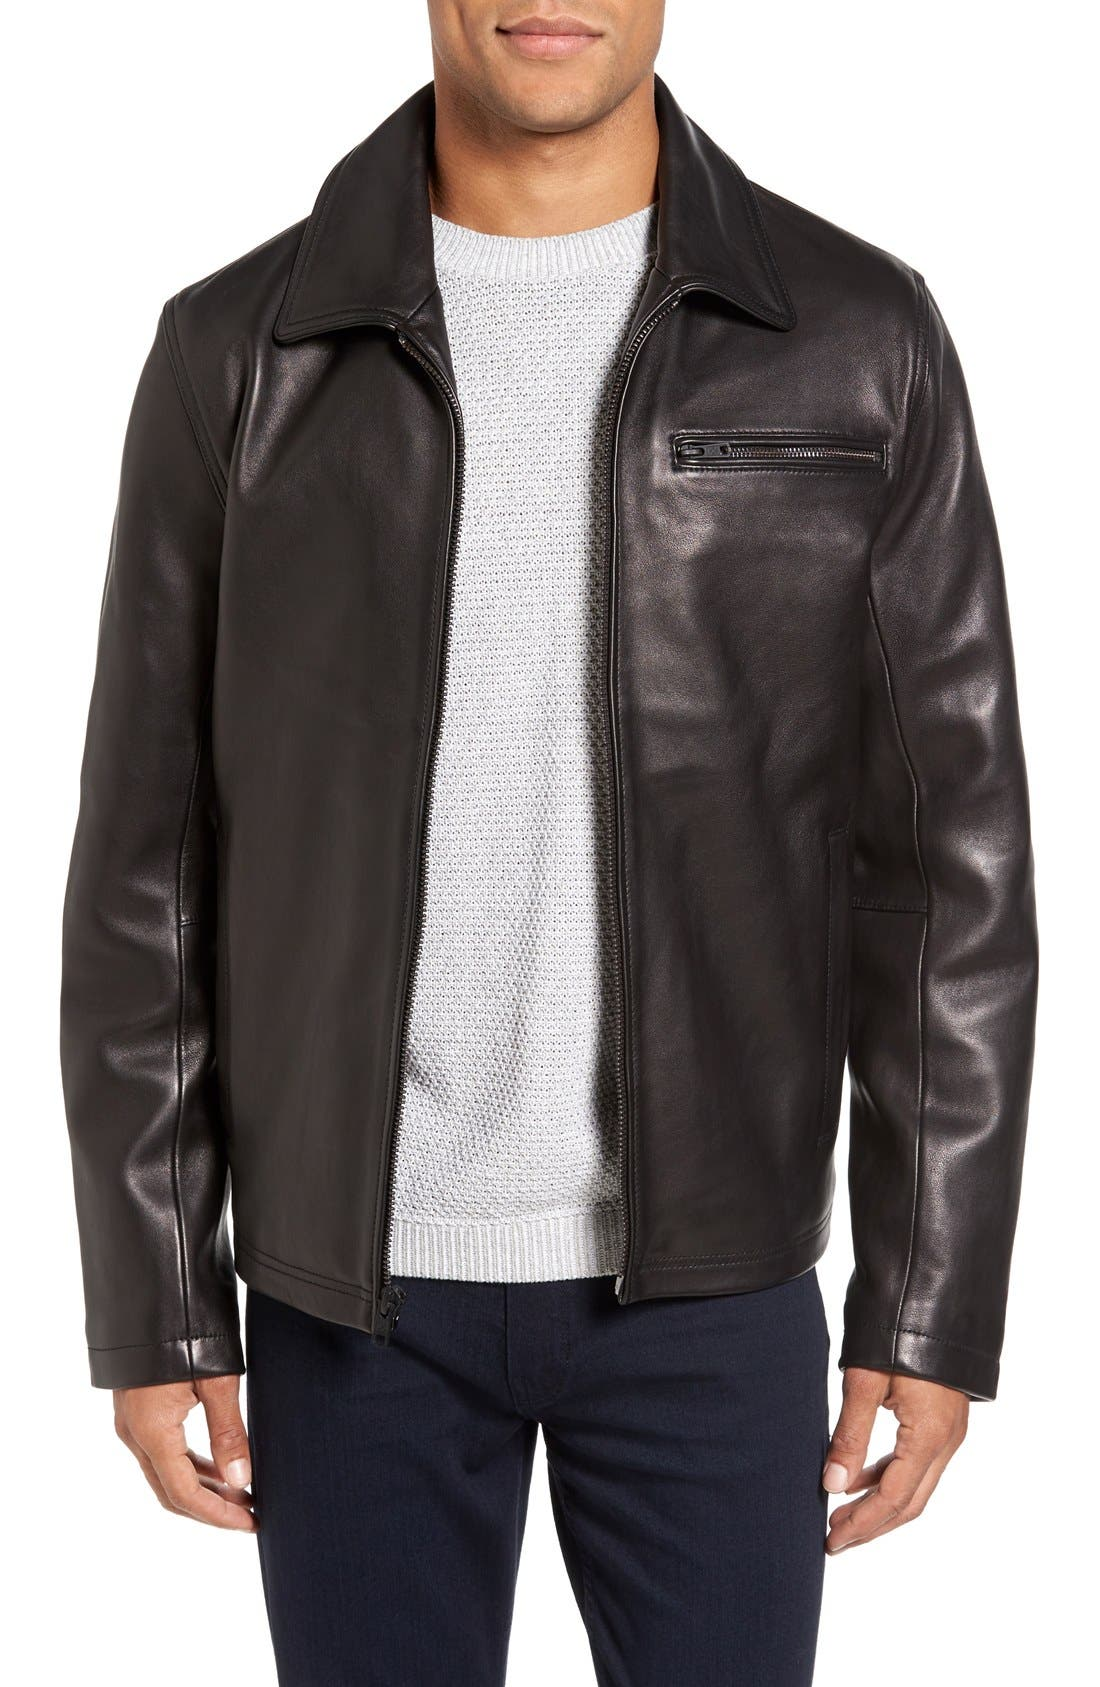 Leather Jacket with Removable Hooded Bib,                             Alternate thumbnail 4, color,                             Black